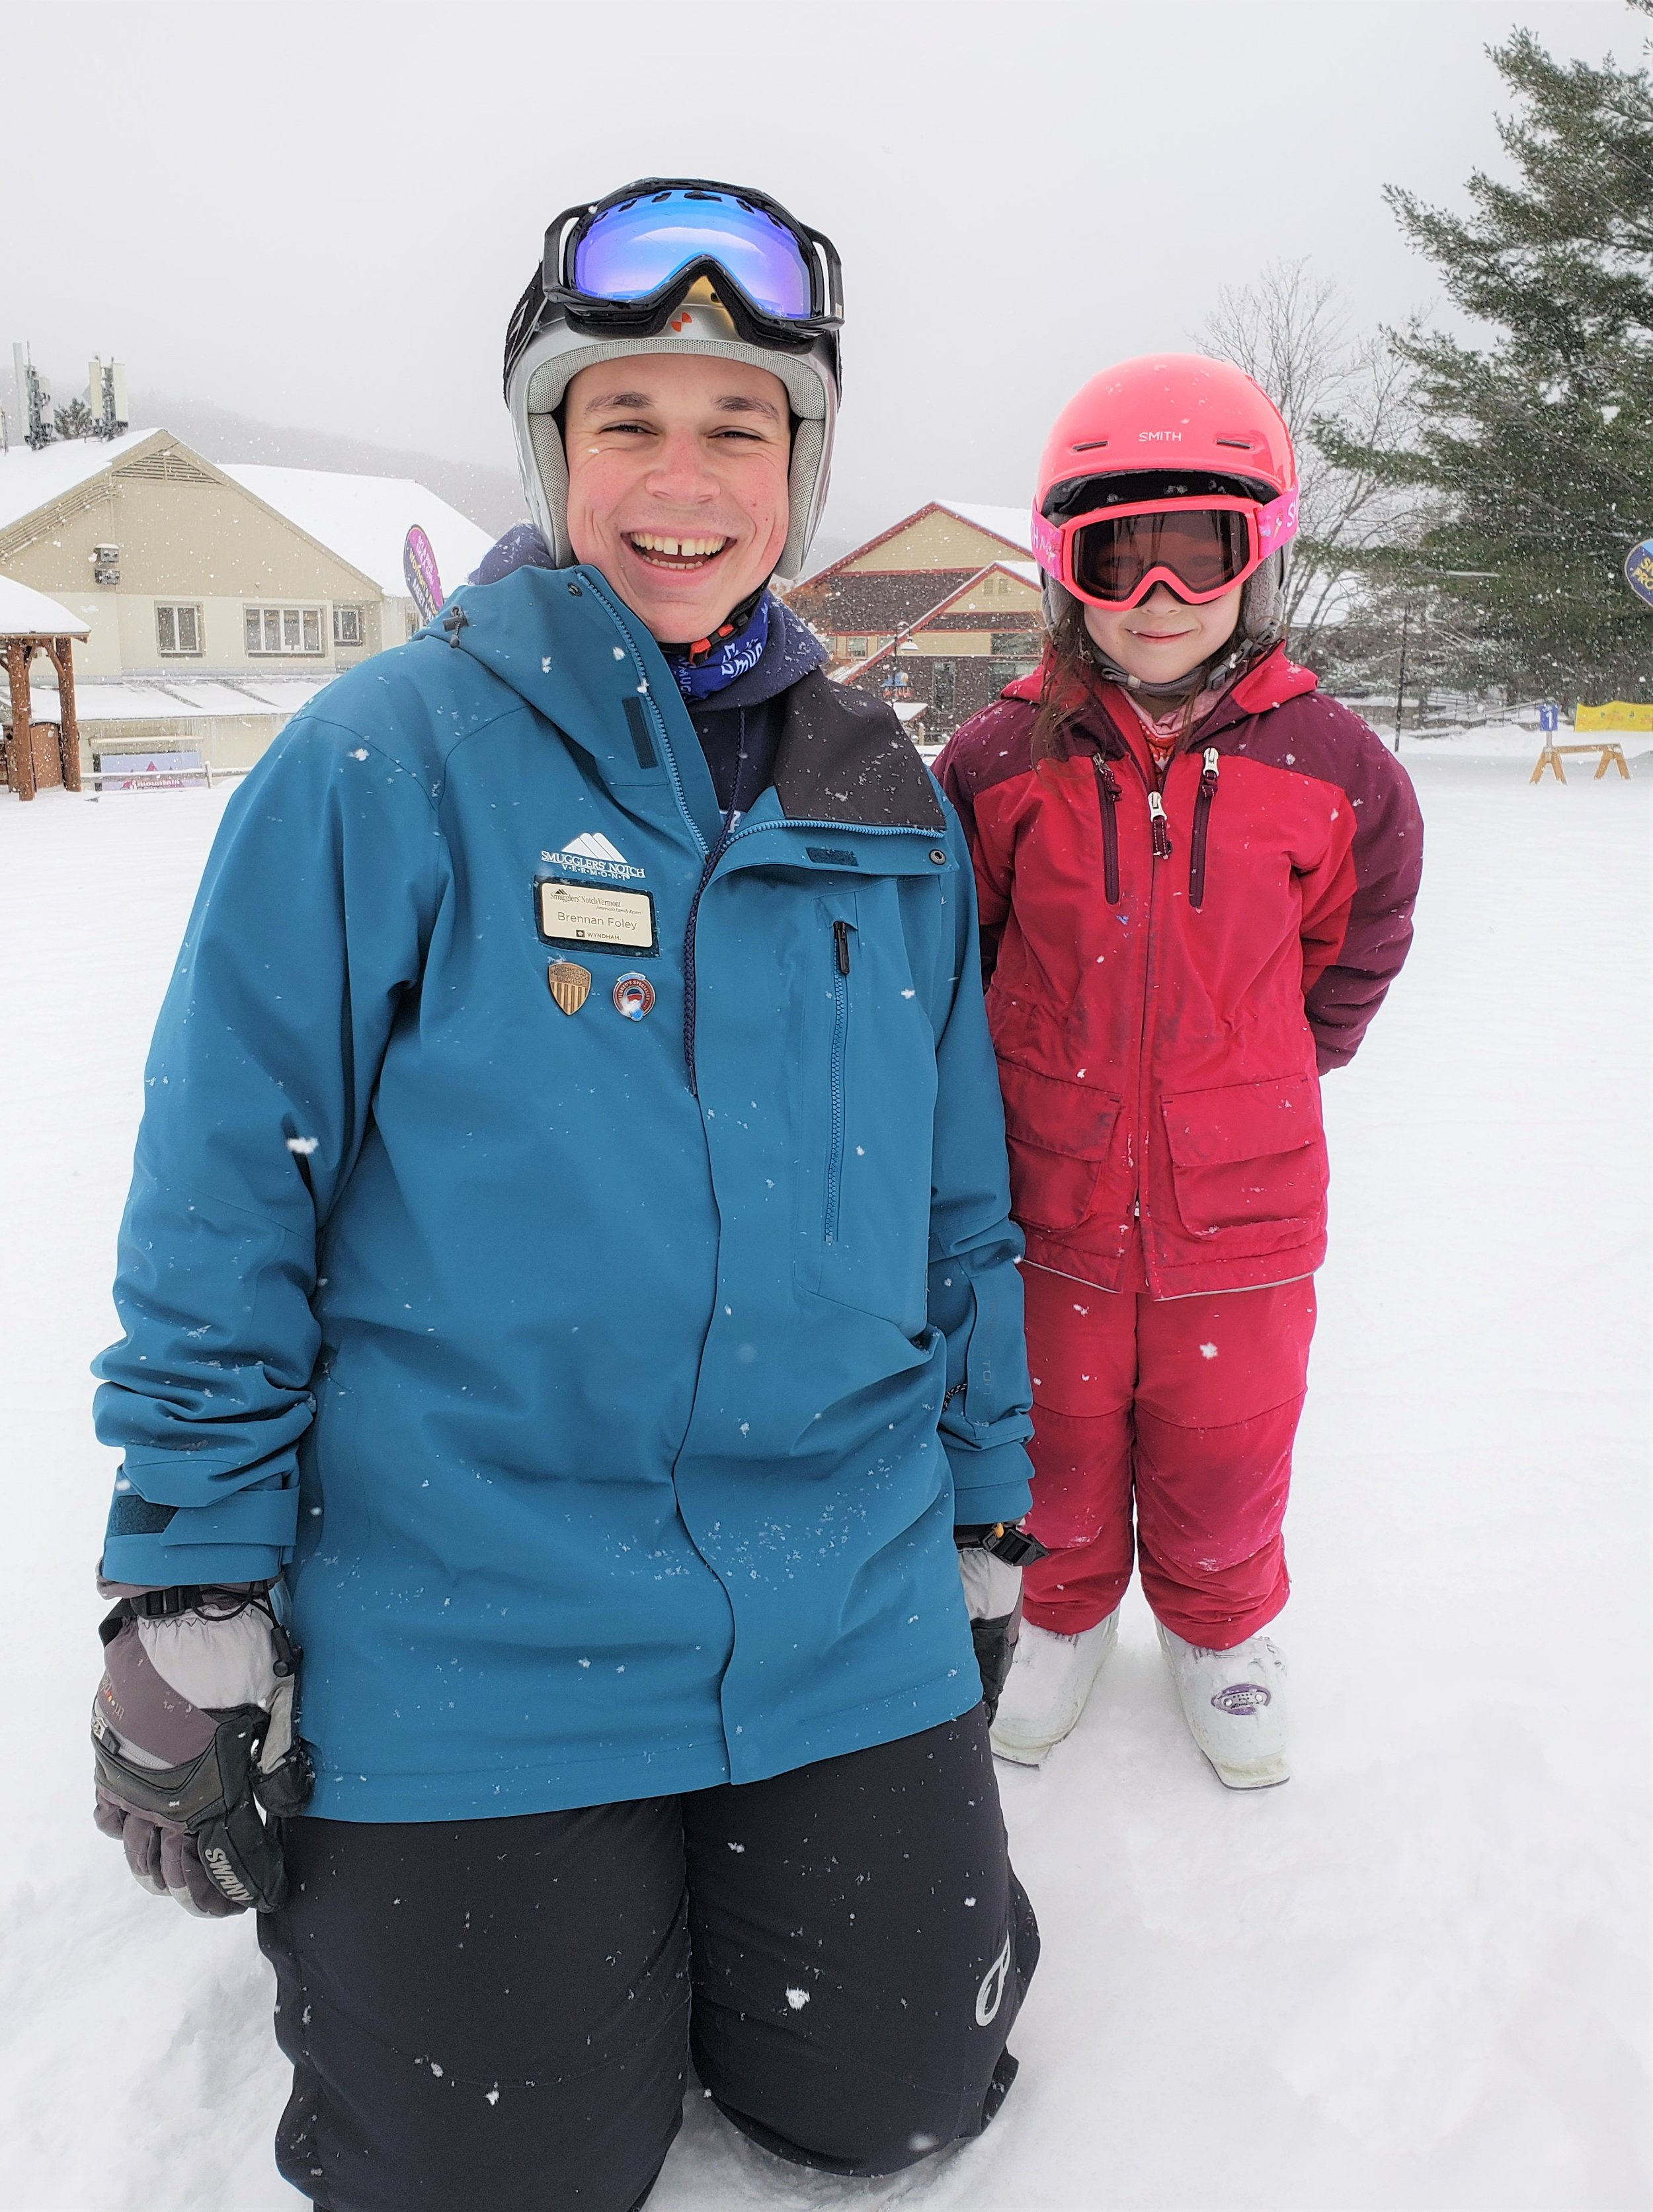 Kid lessons at Smugglers' Notch